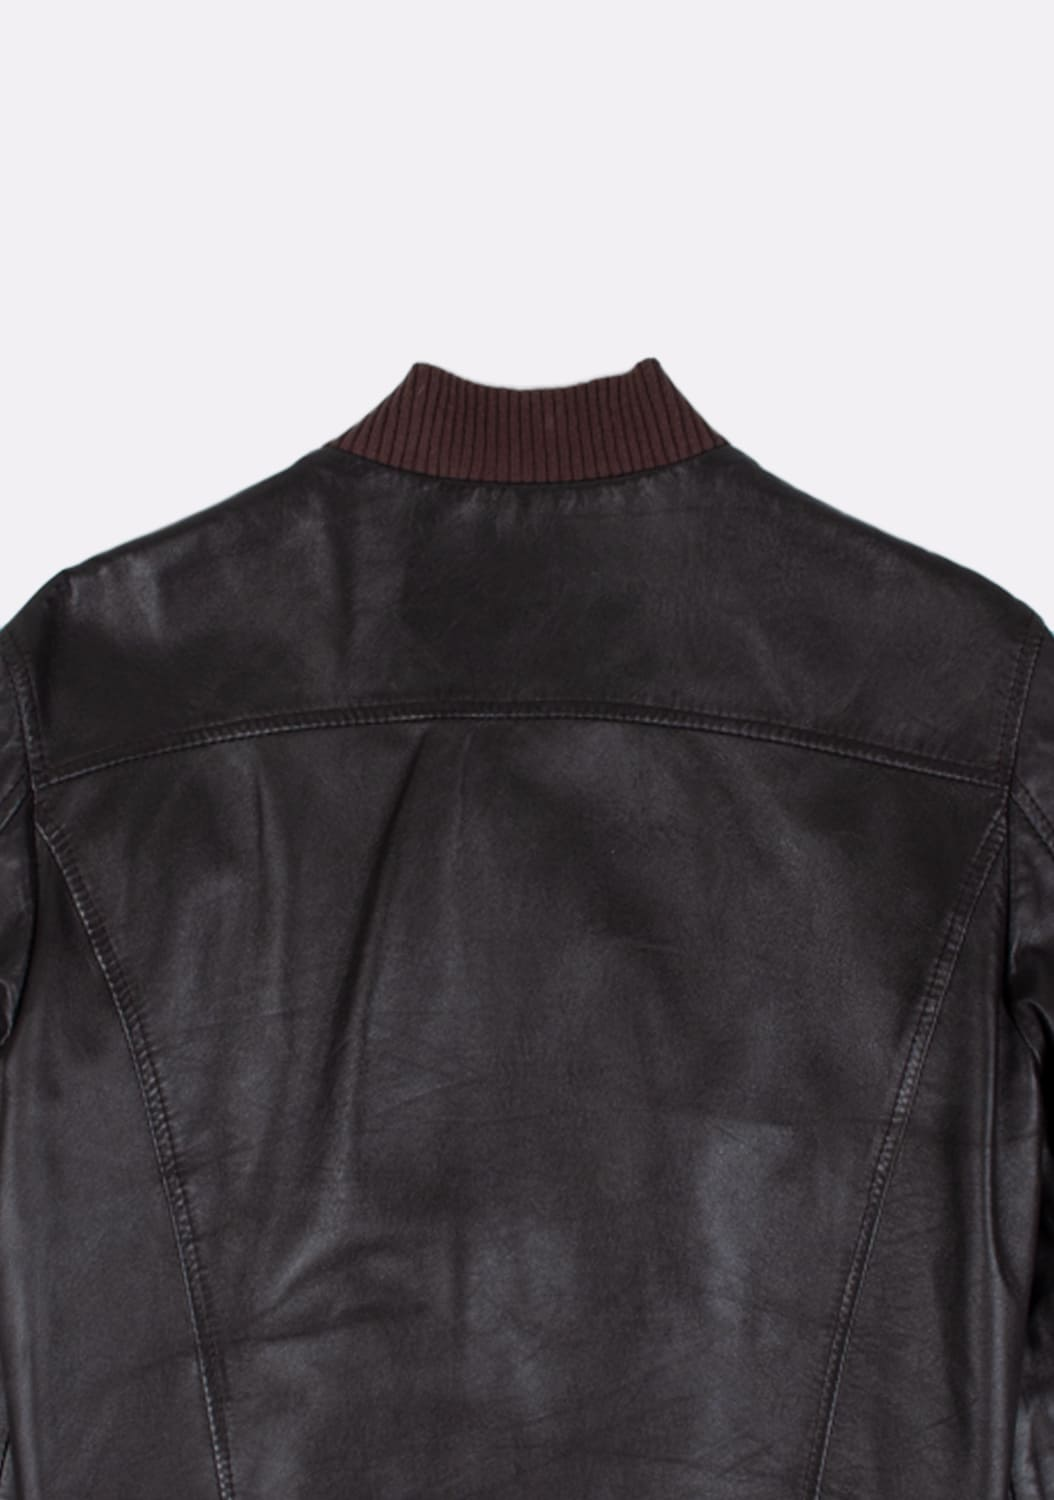 Dolce&Gabbana-Leather-Bomber-Men-Jacket-Size 46-ITA-urocklt (4)